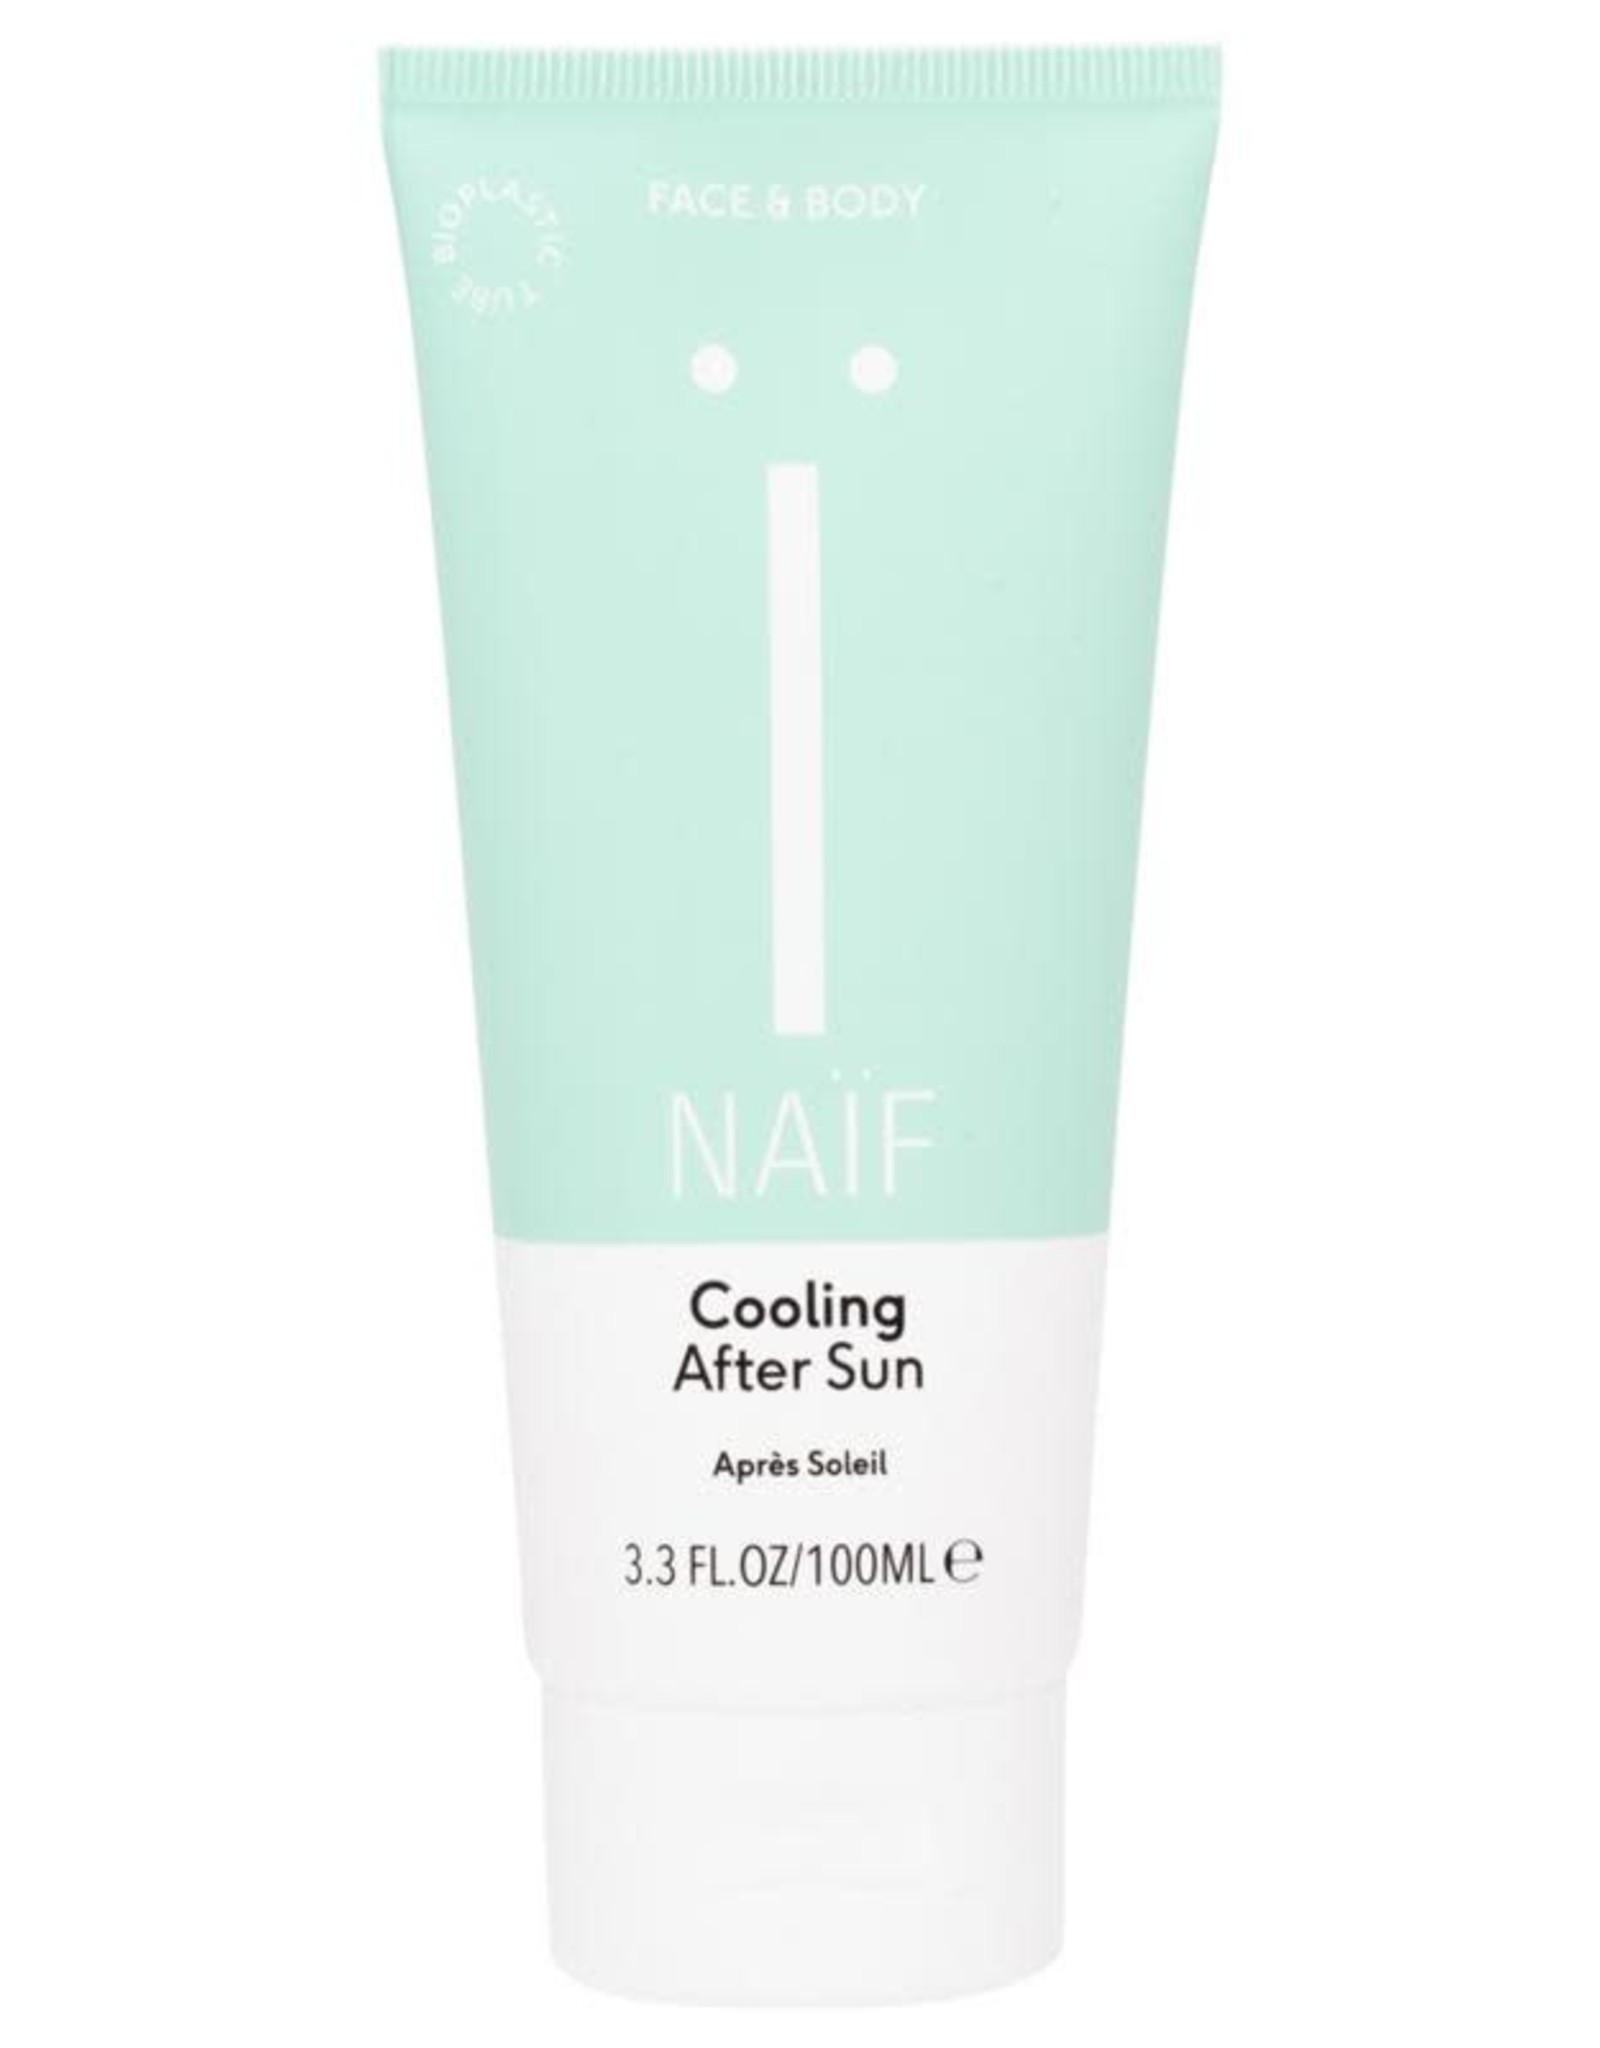 Naïf Cooling After Sun Face & Body 100ml